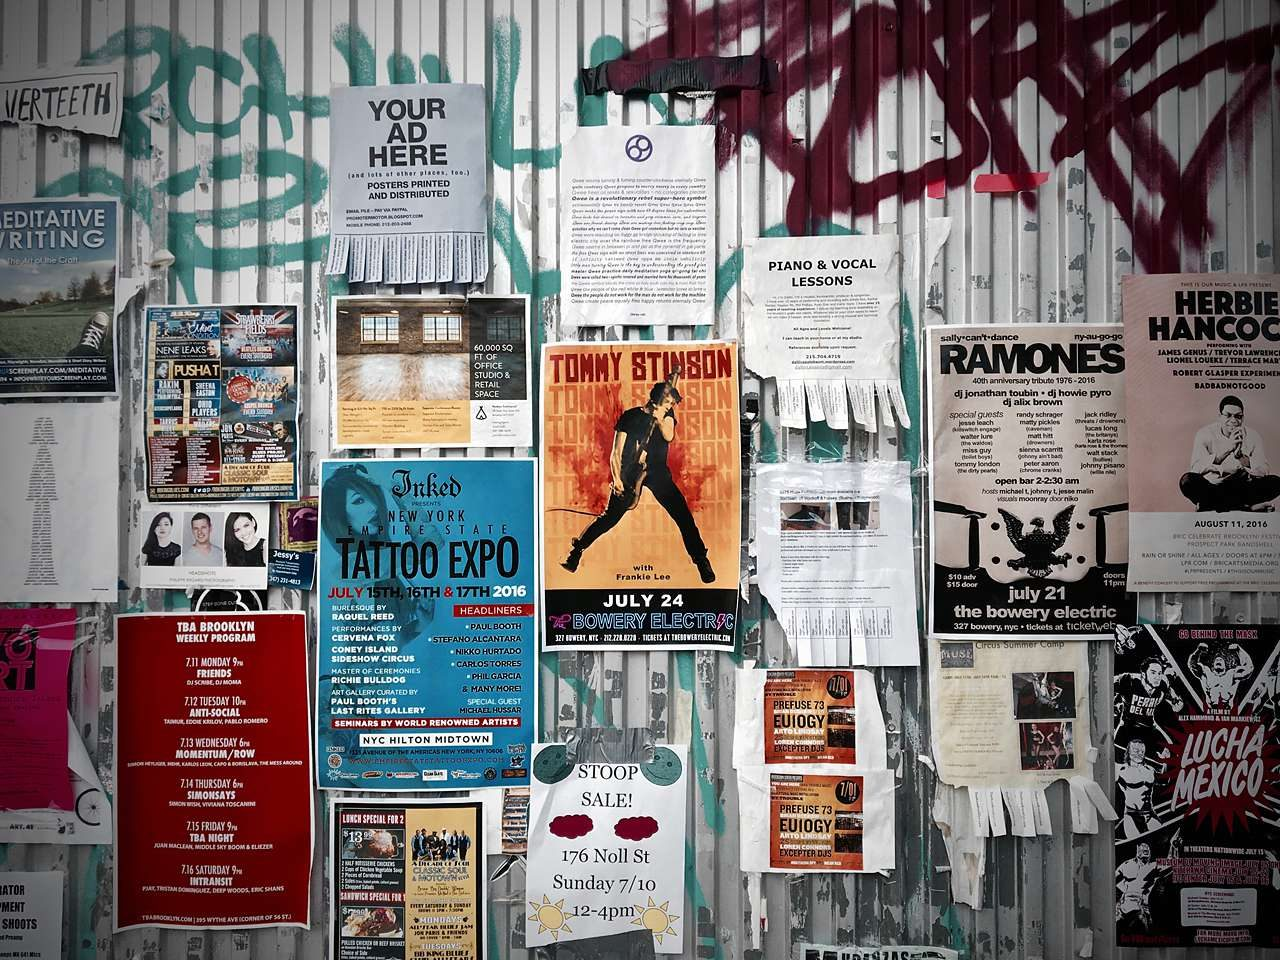 Printed flyers covering graffitied steel wall